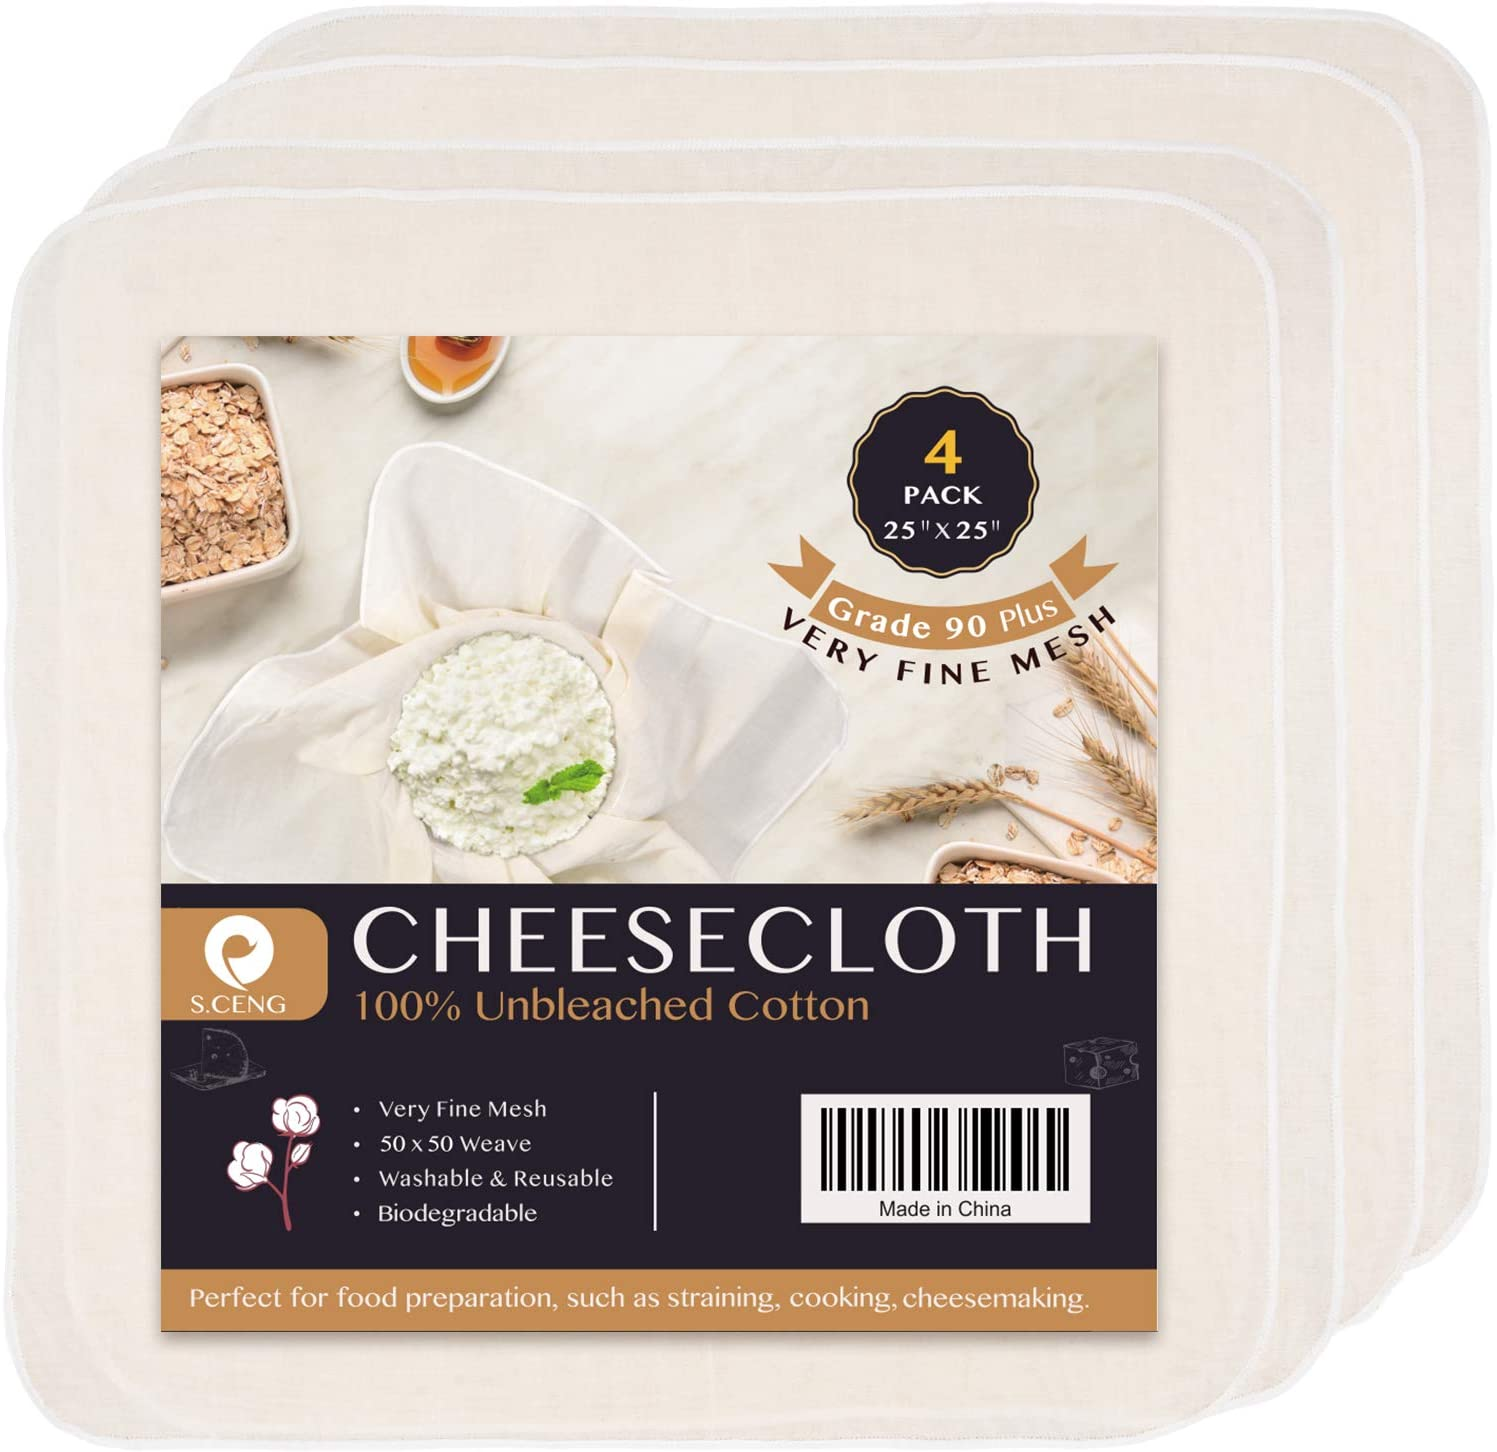 Precut Cheesecloth 25 x low-pricing 25'' SALENEW very popular! 4 Pack Weave Fine 50 Ultra